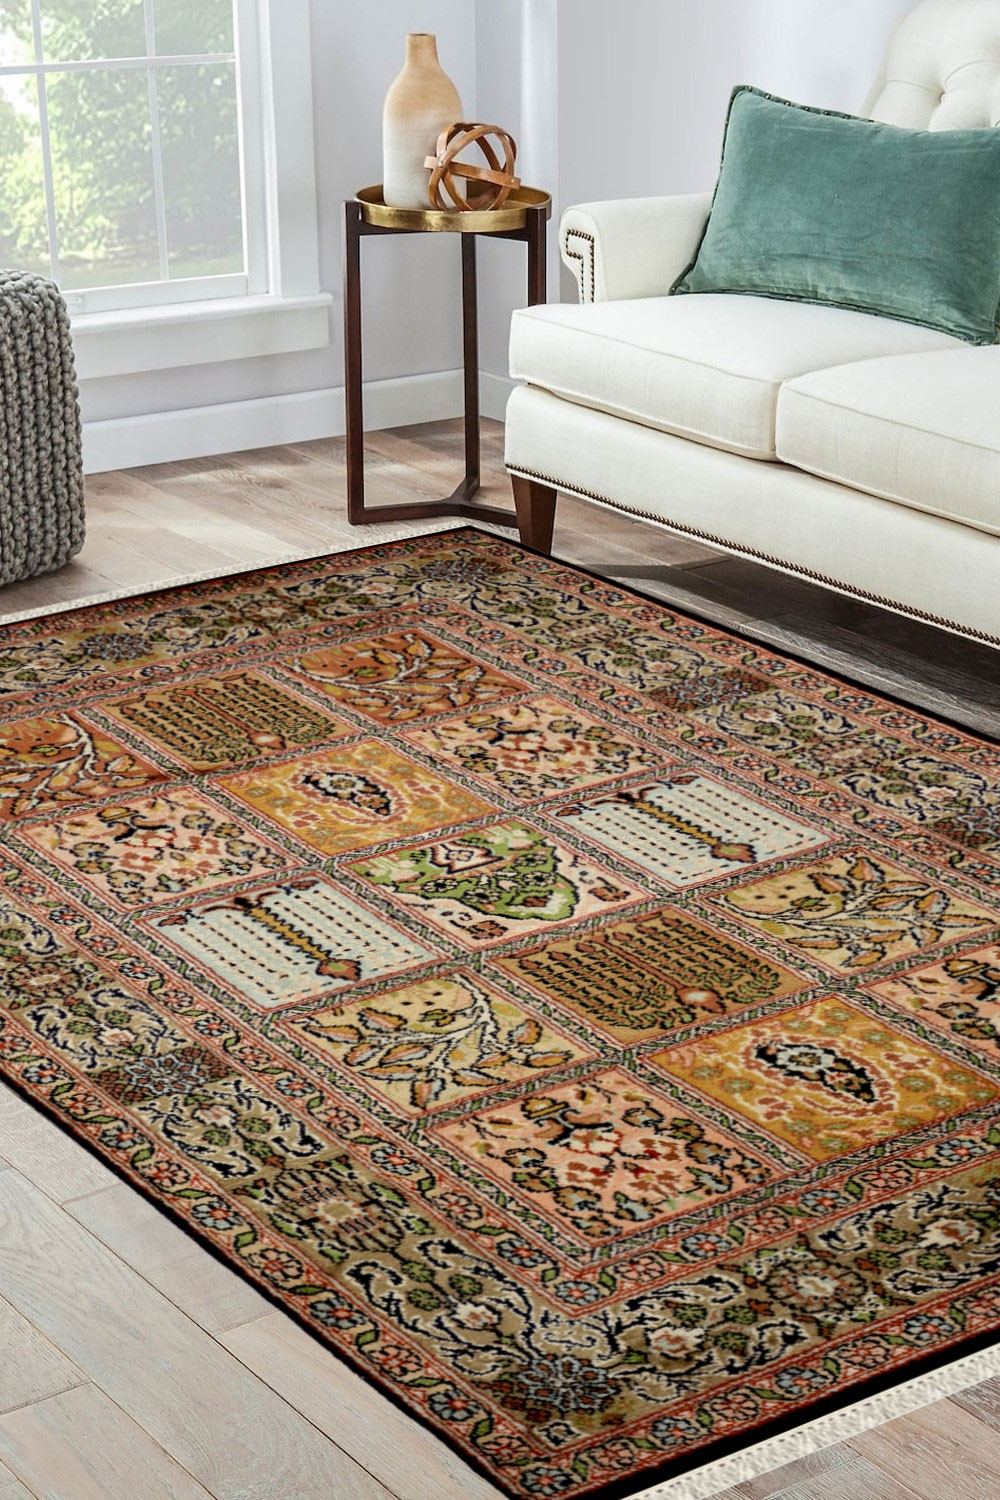 Shop Area Rugs Online And Classic Hamadan Silk Area Rug In